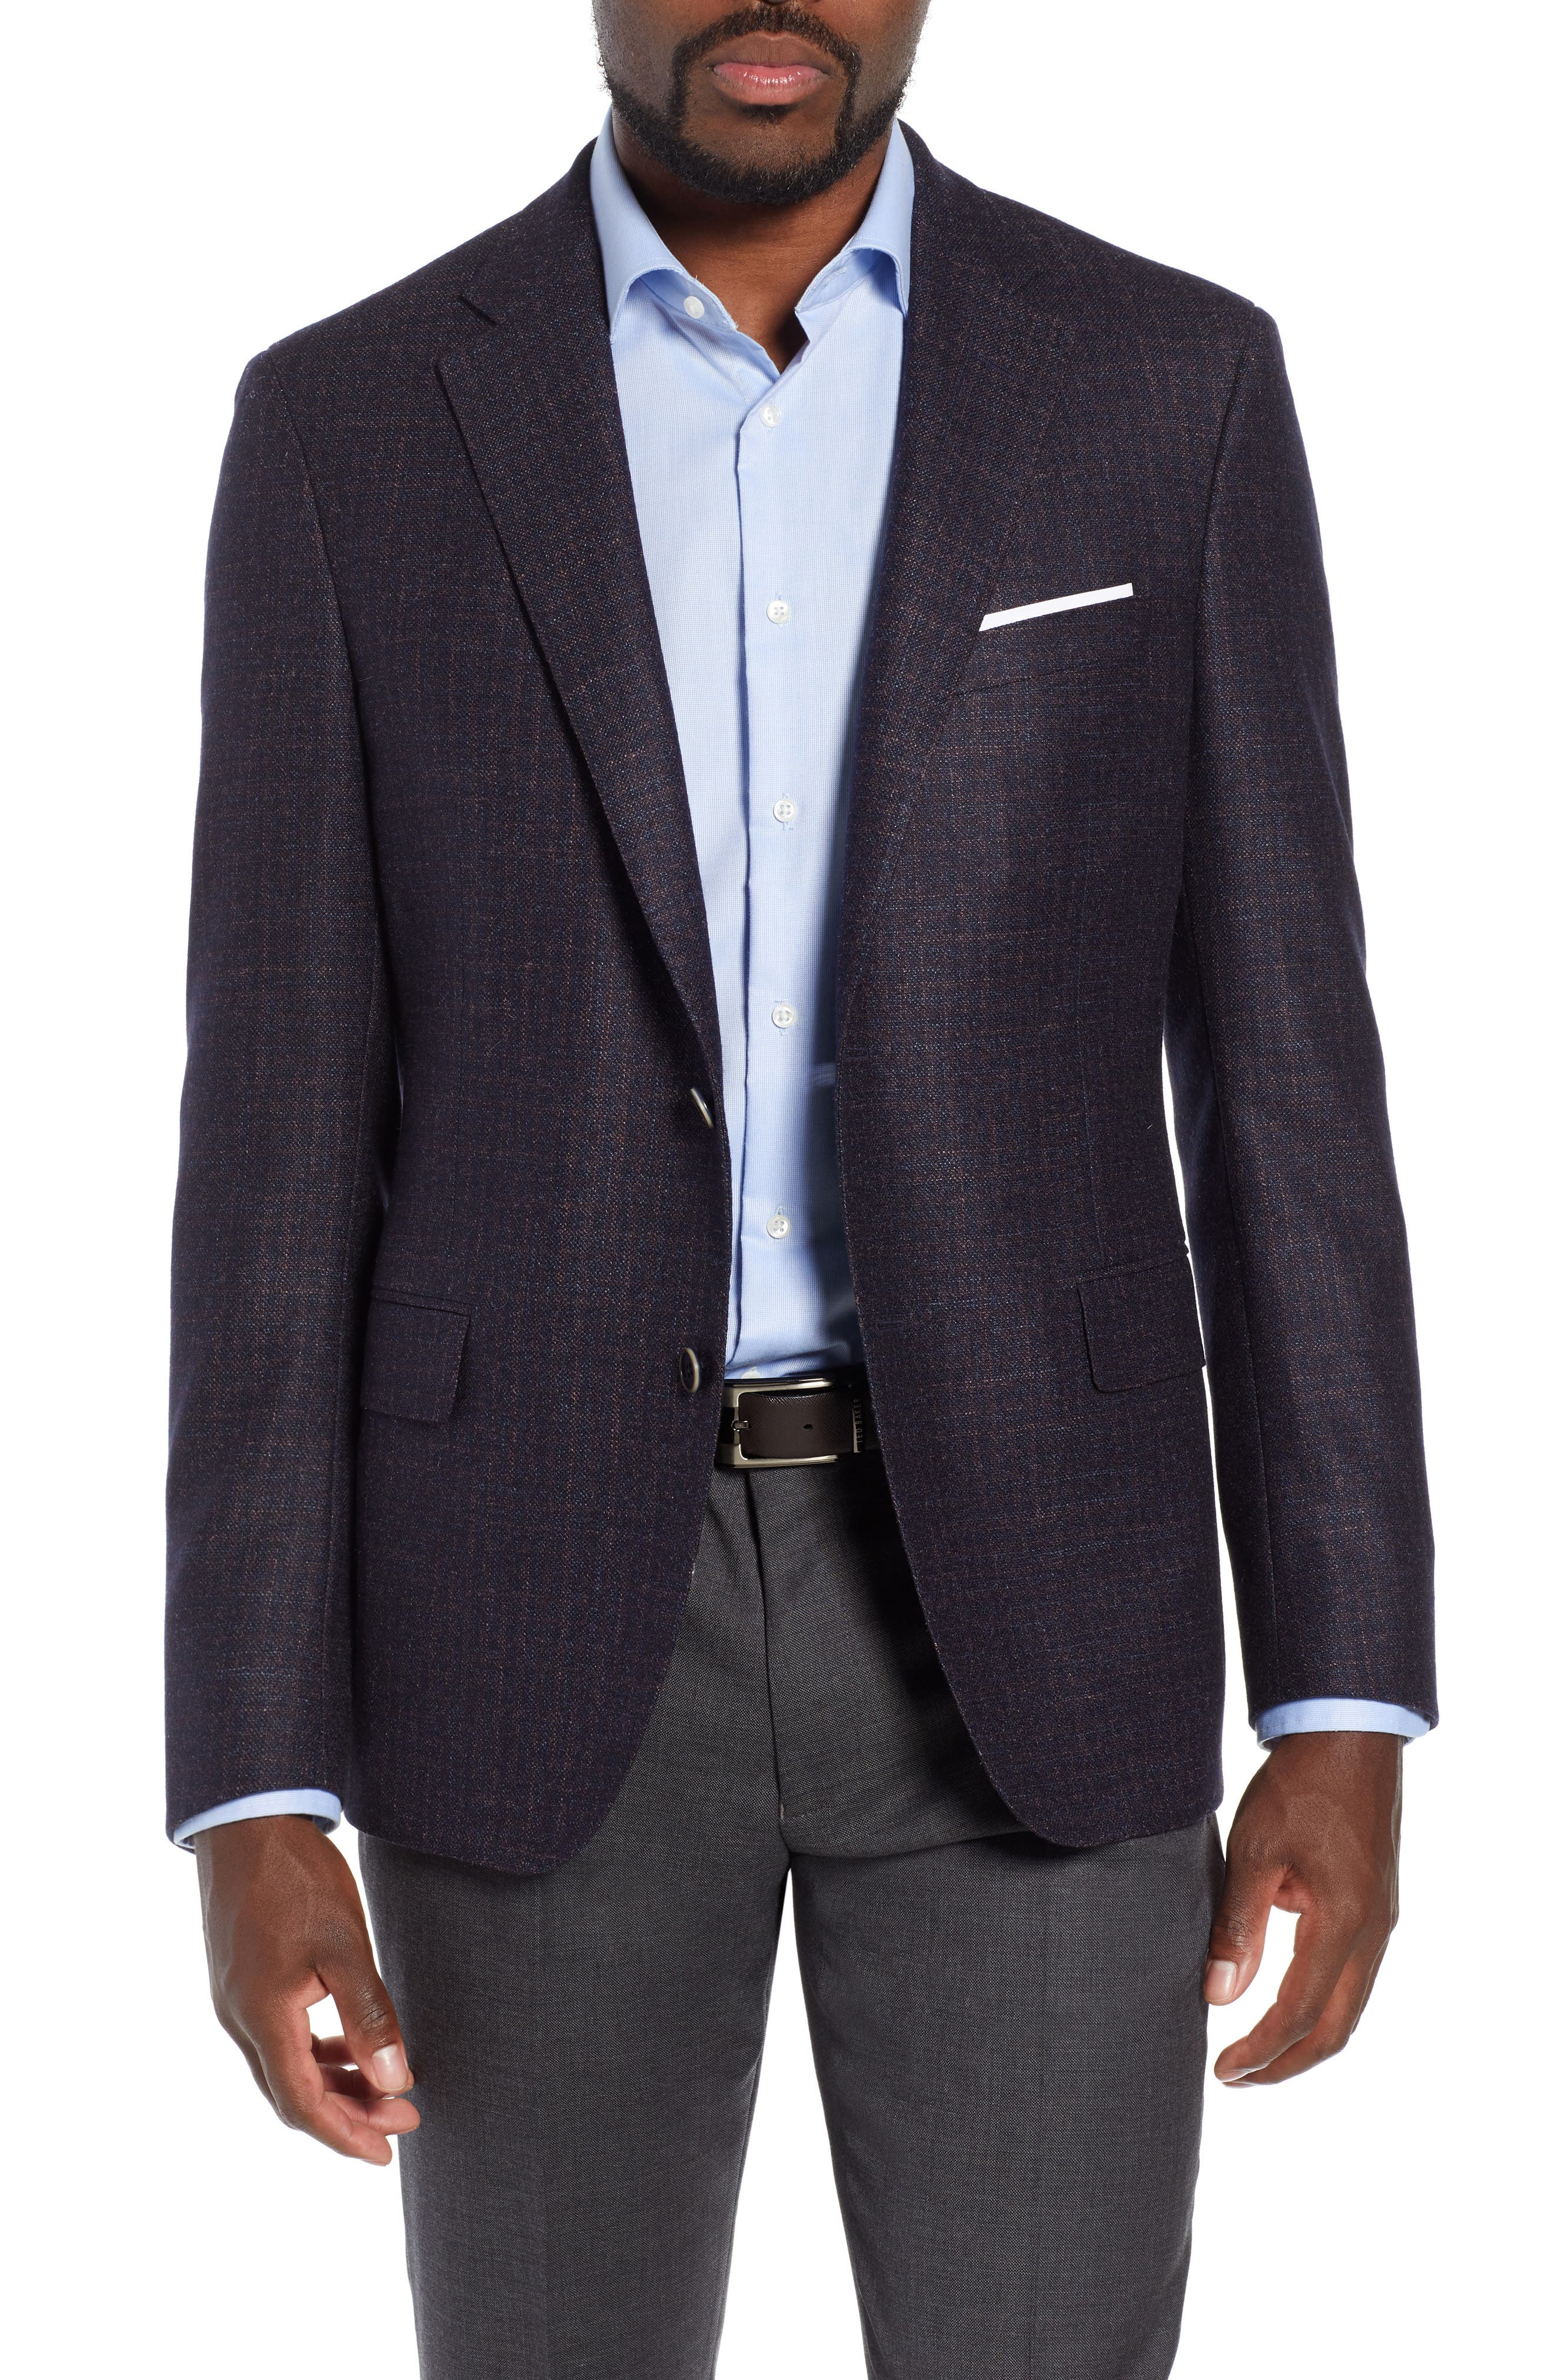 Classic Fit Wool Blazer,                             Main thumbnail 1, color,                             NAVY/ BERRY